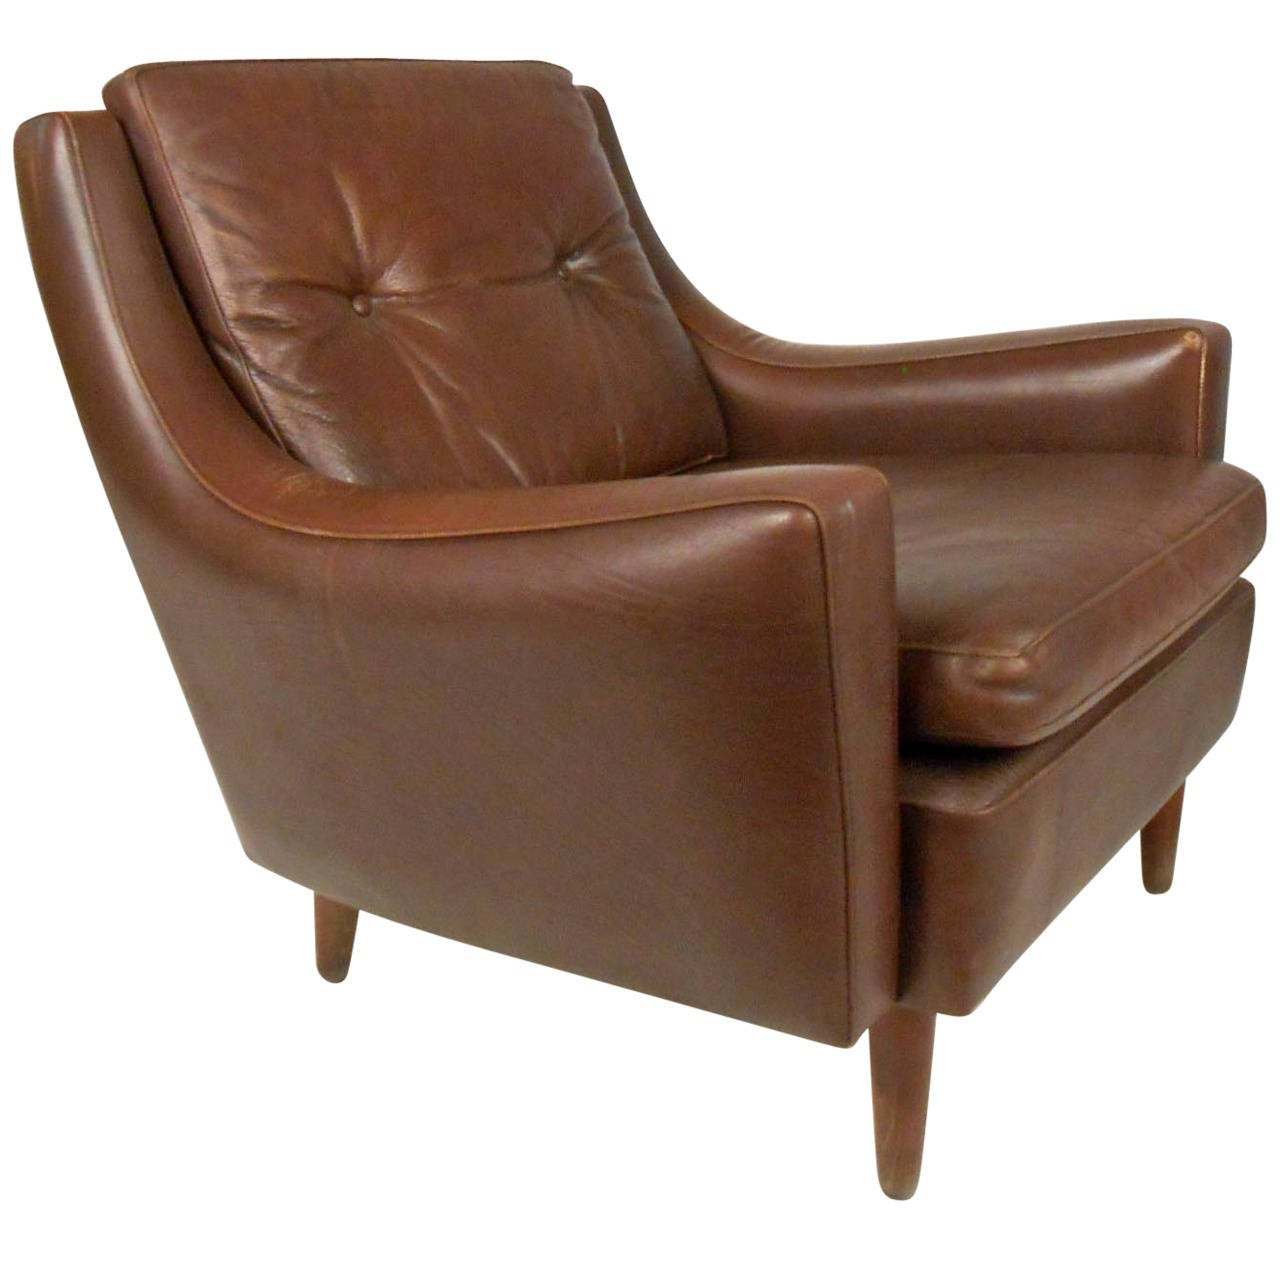 Mid Century Modern Furniture Chair: Mid-Century Modern Tufted Brown Leather Club Chair At 1stdibs